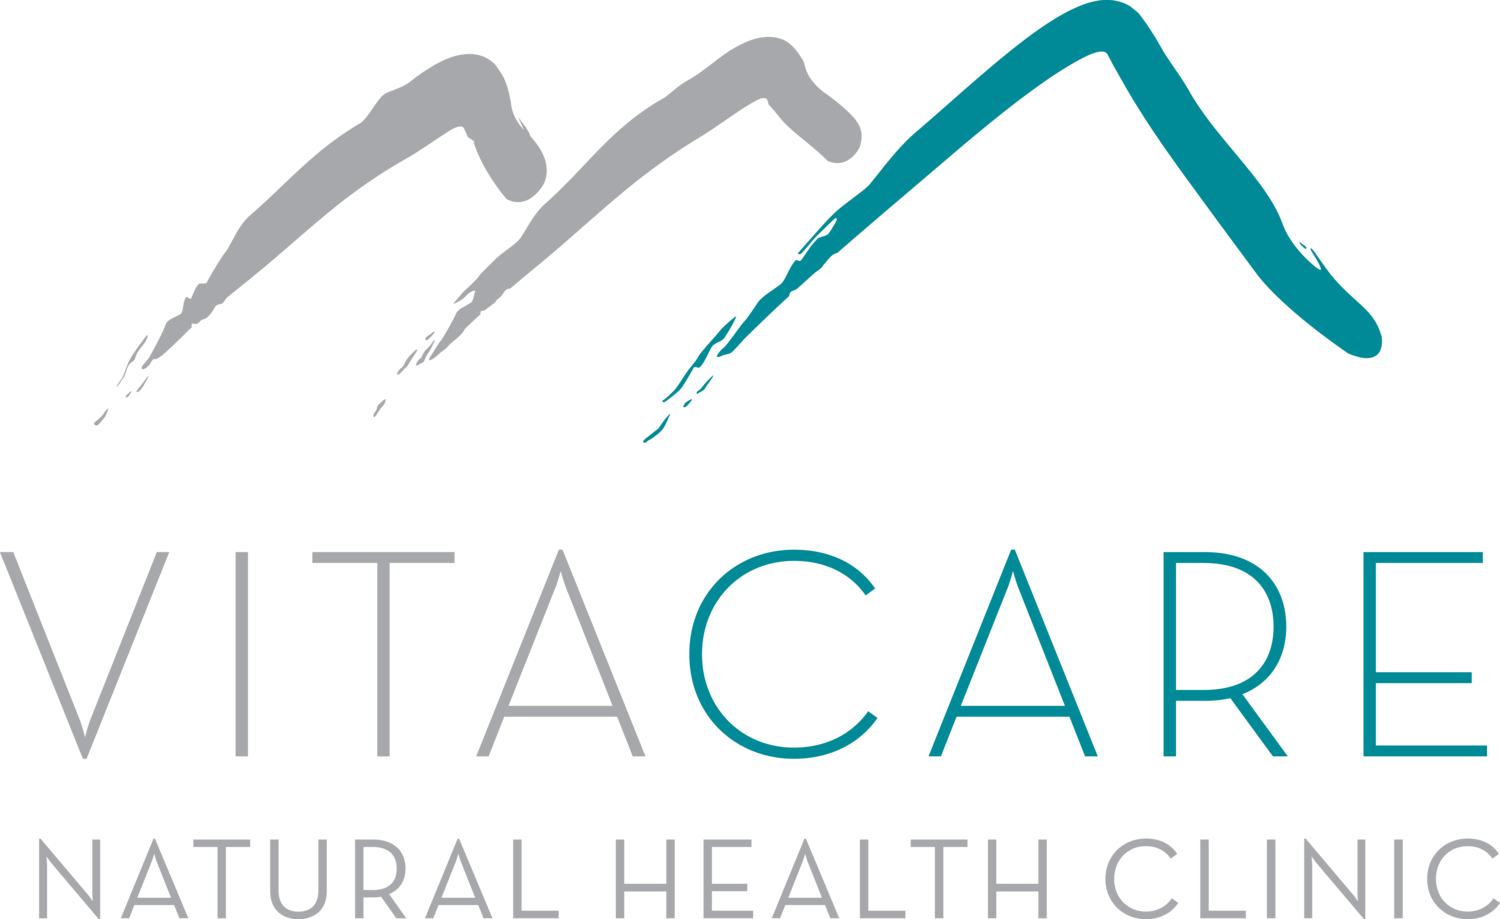 VitaCare Natural Health Clinic